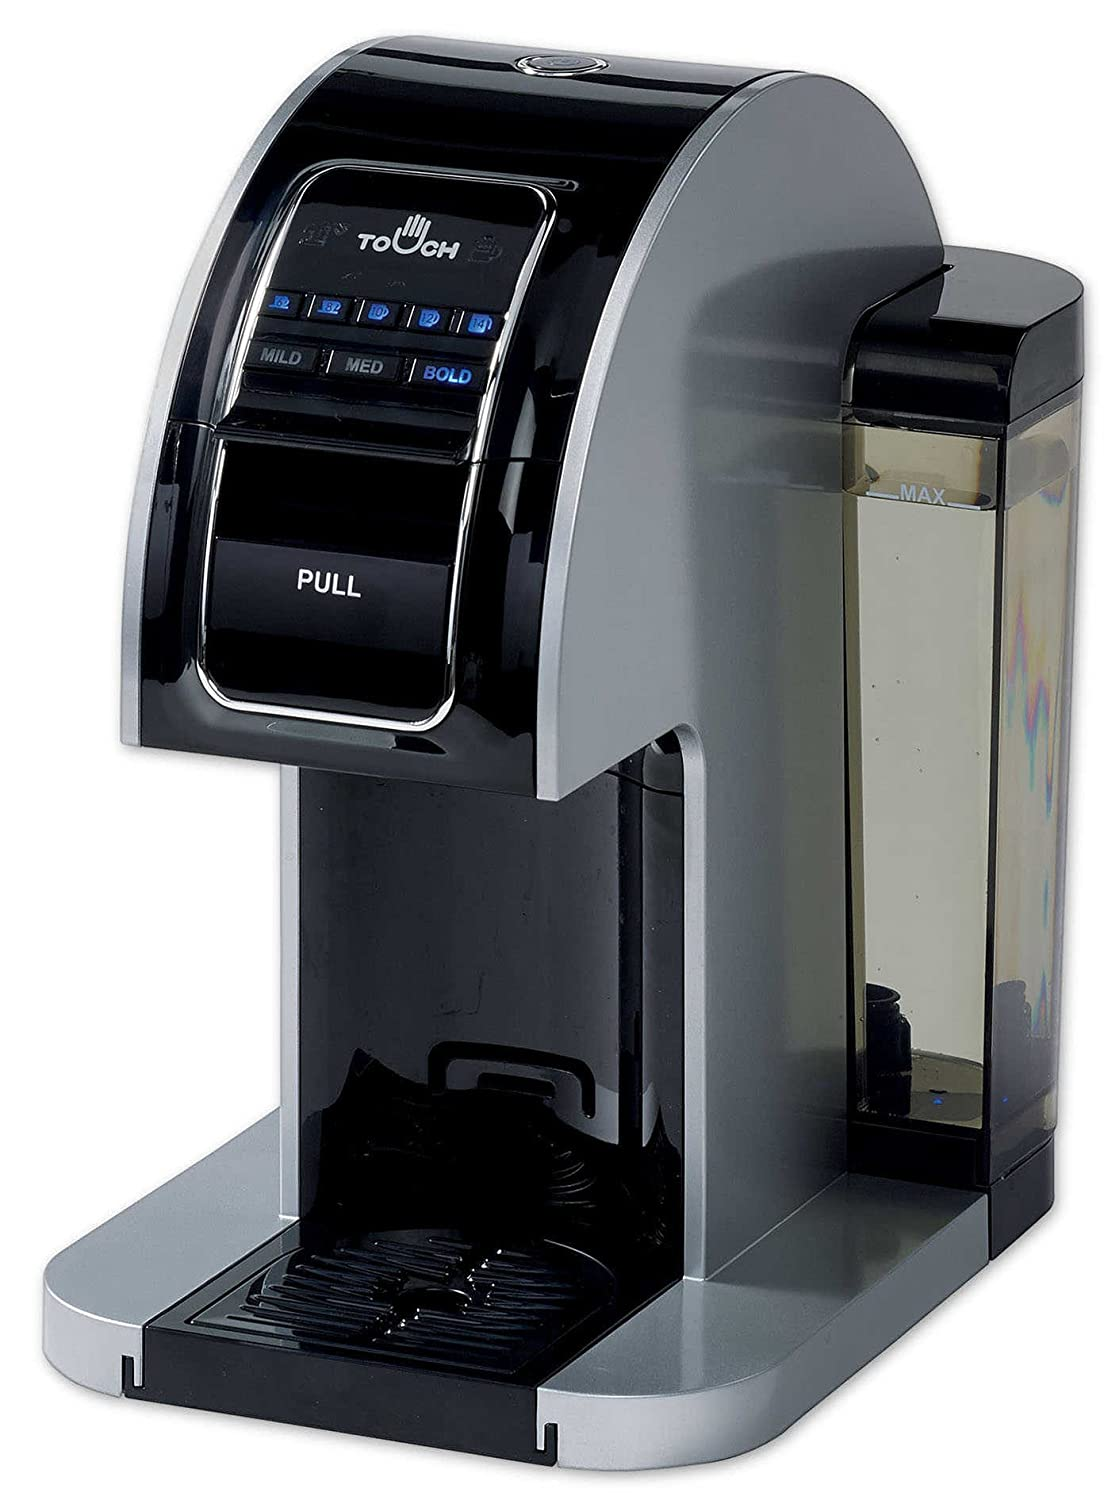 Touch Choice Single Serve Coffee Brewer - Silver Coffee Maker with Full K-Cup Pod Compatibility & Rapid Brew Technology - T414S